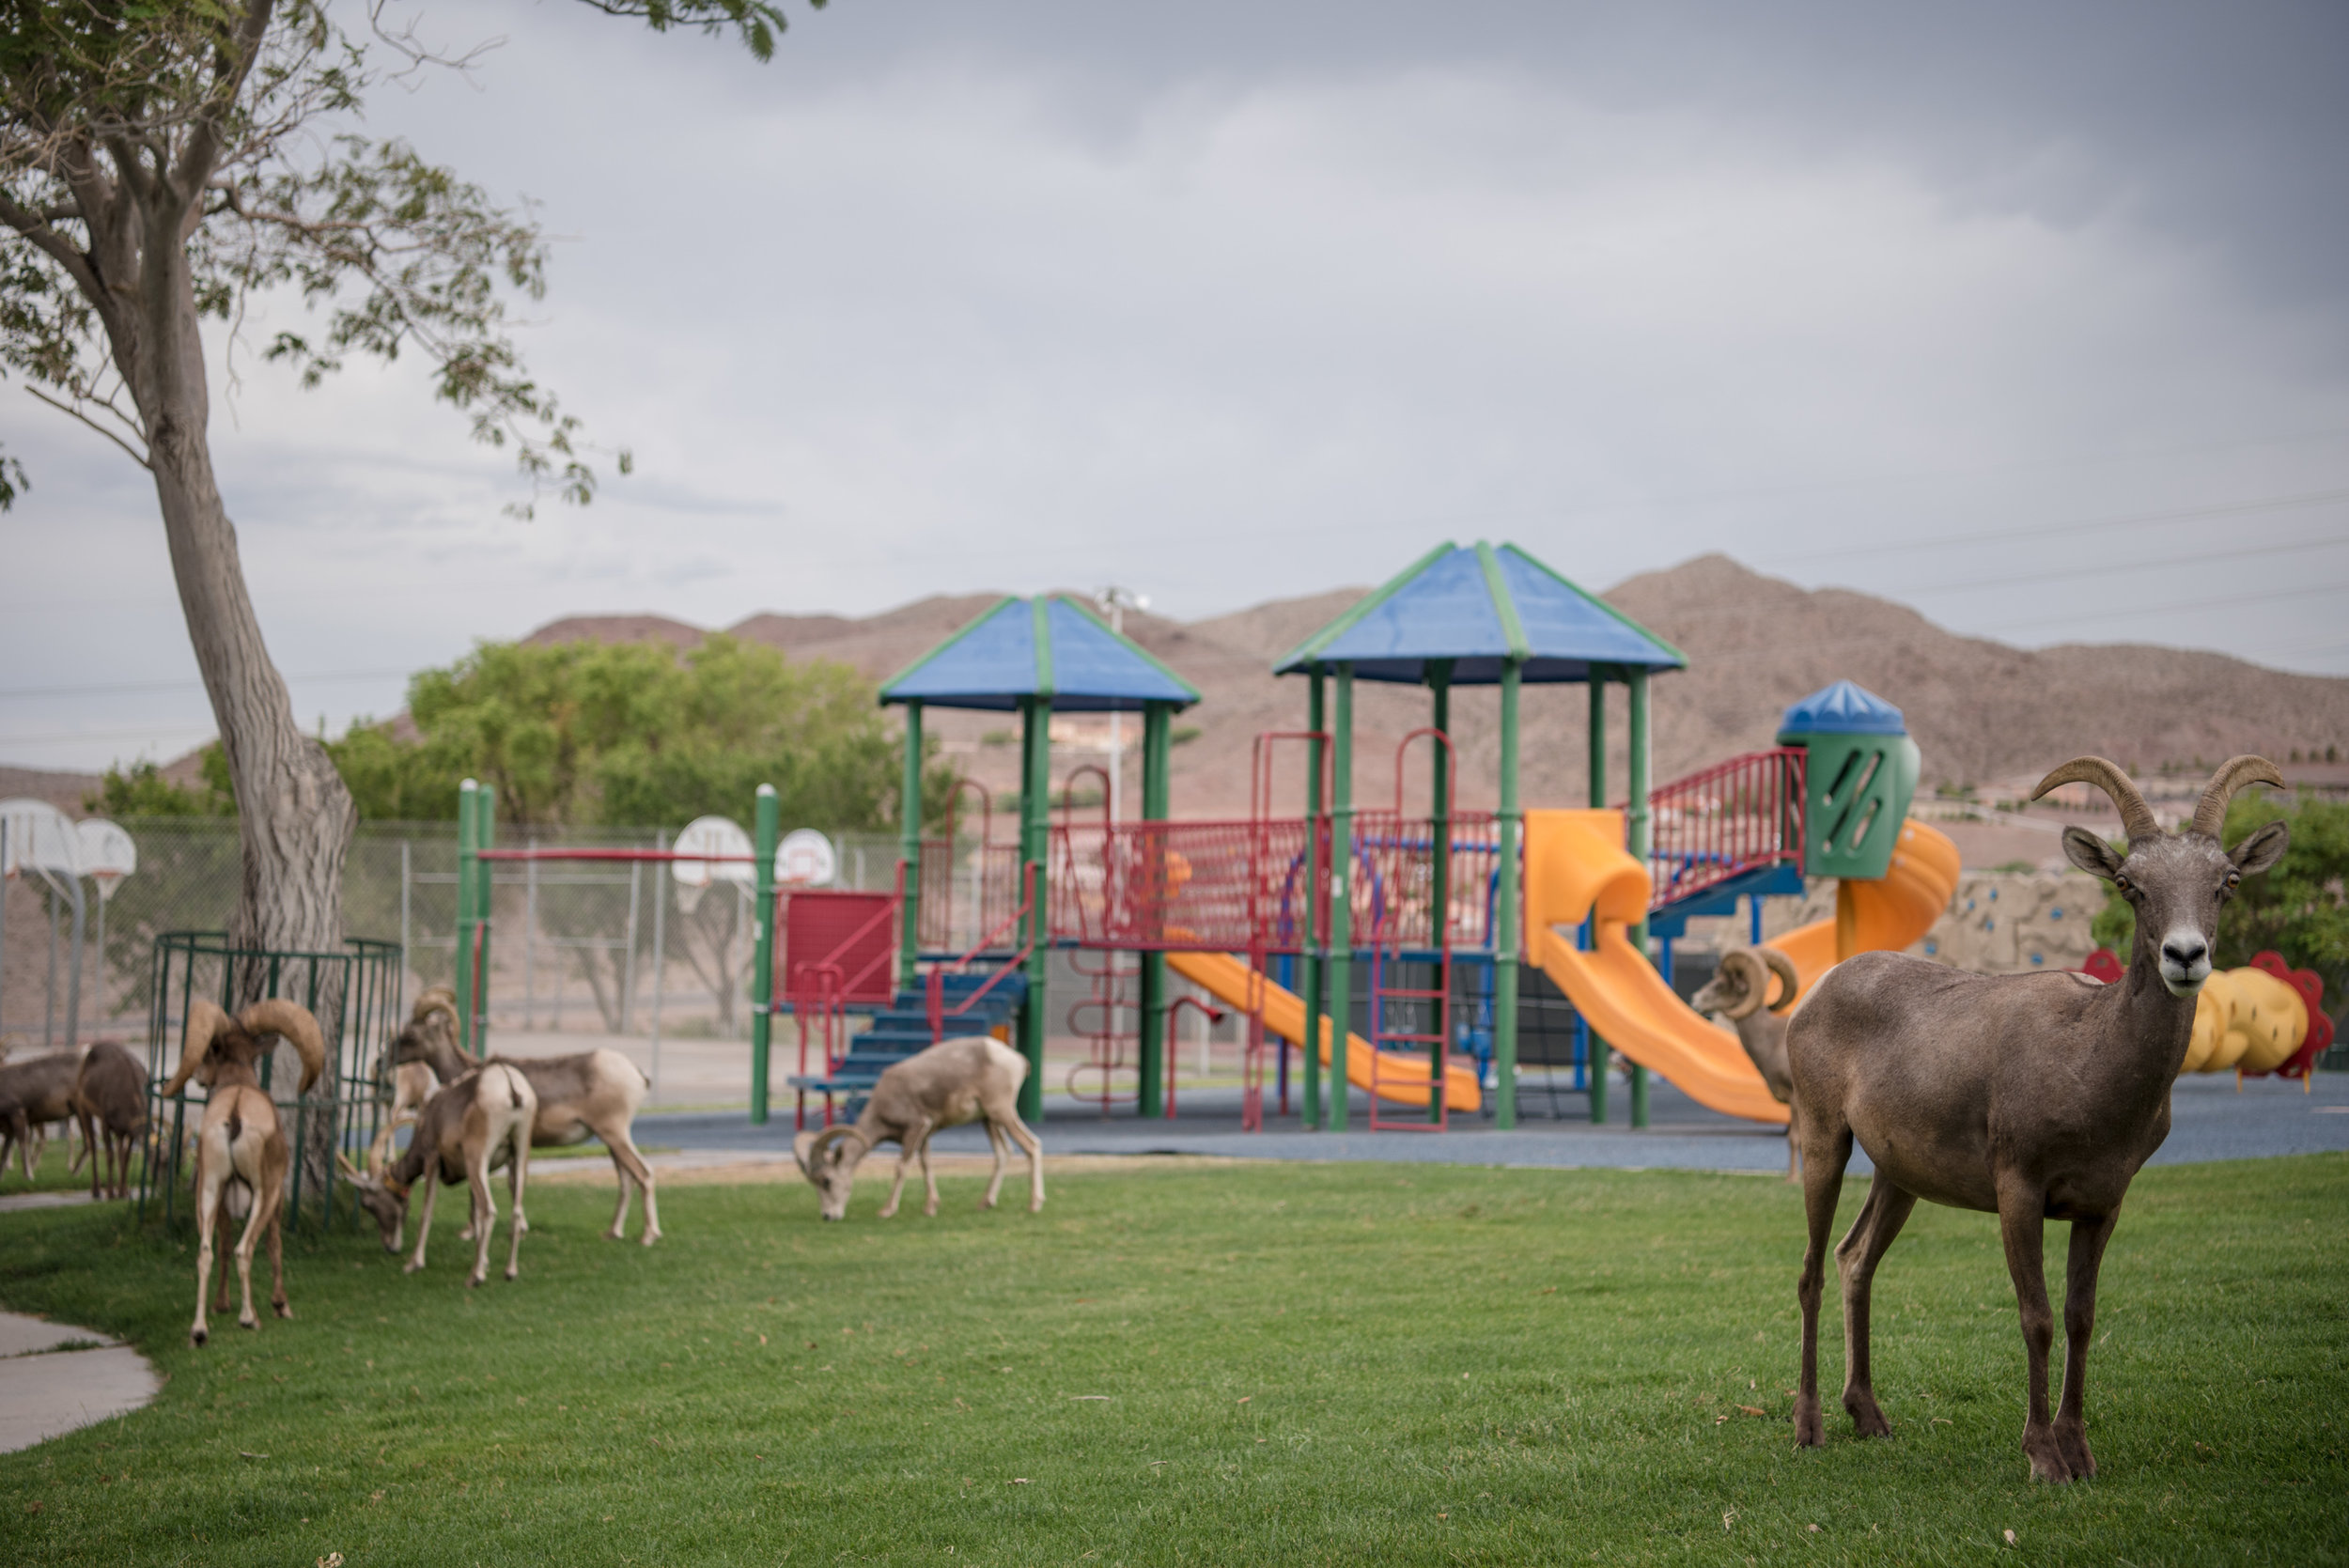 Bighorn sheep at Hemenway Park on Tuesday, July 18, 2017, in Boulder City. Morgan Lieberman Las Vegas Review-Journal